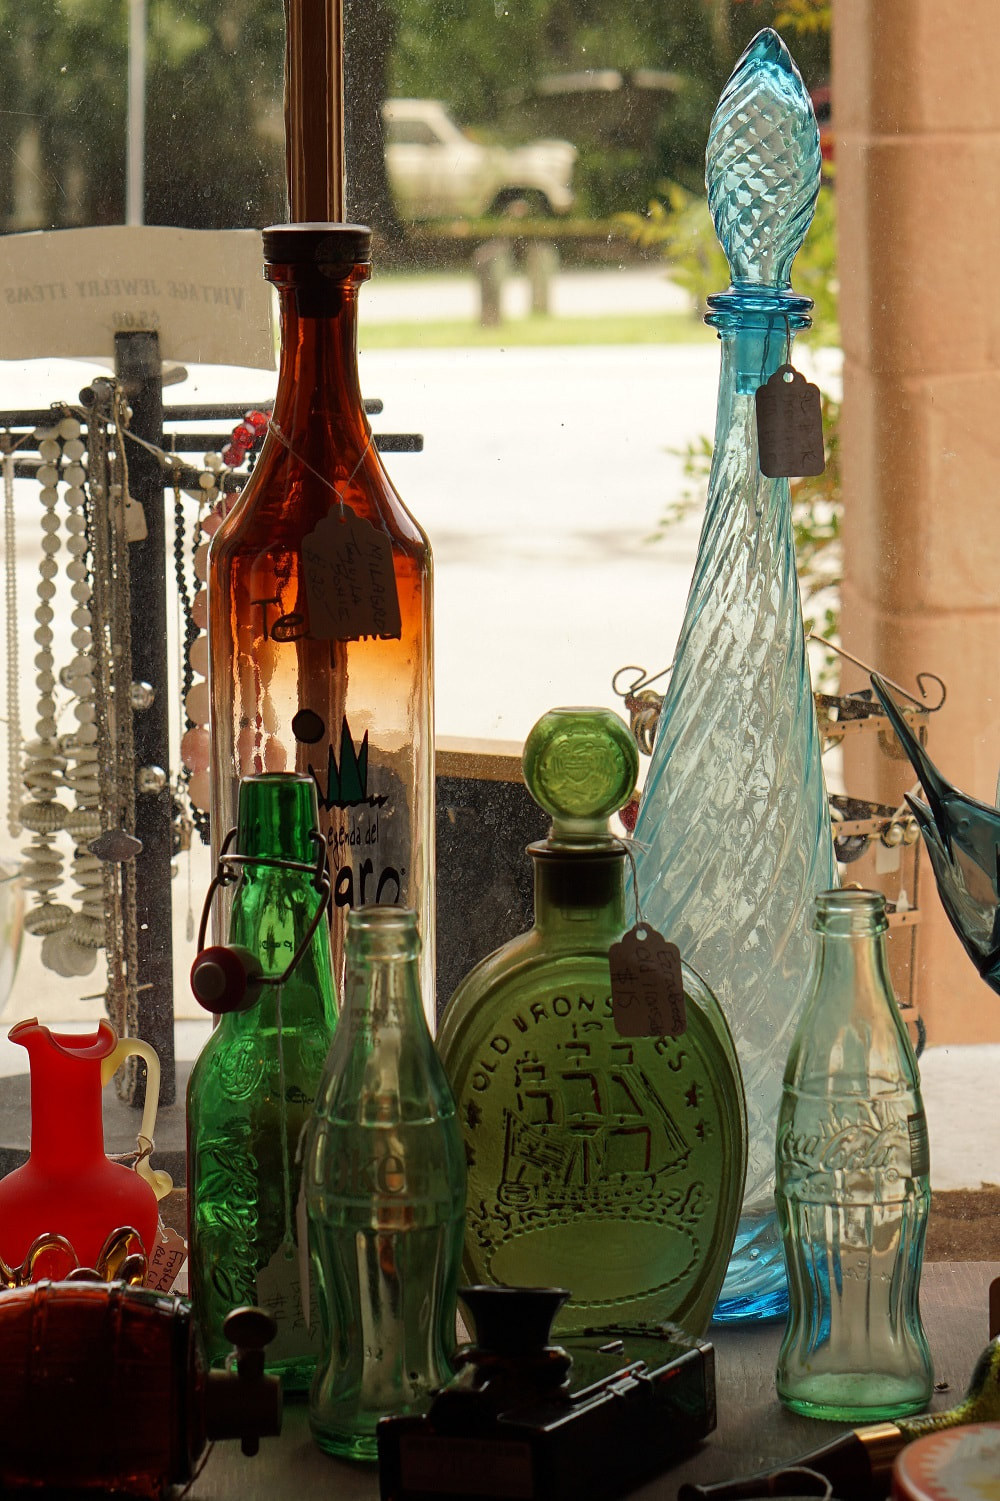 Picture of glass bottles in an antique shop in Micanopy, Florida